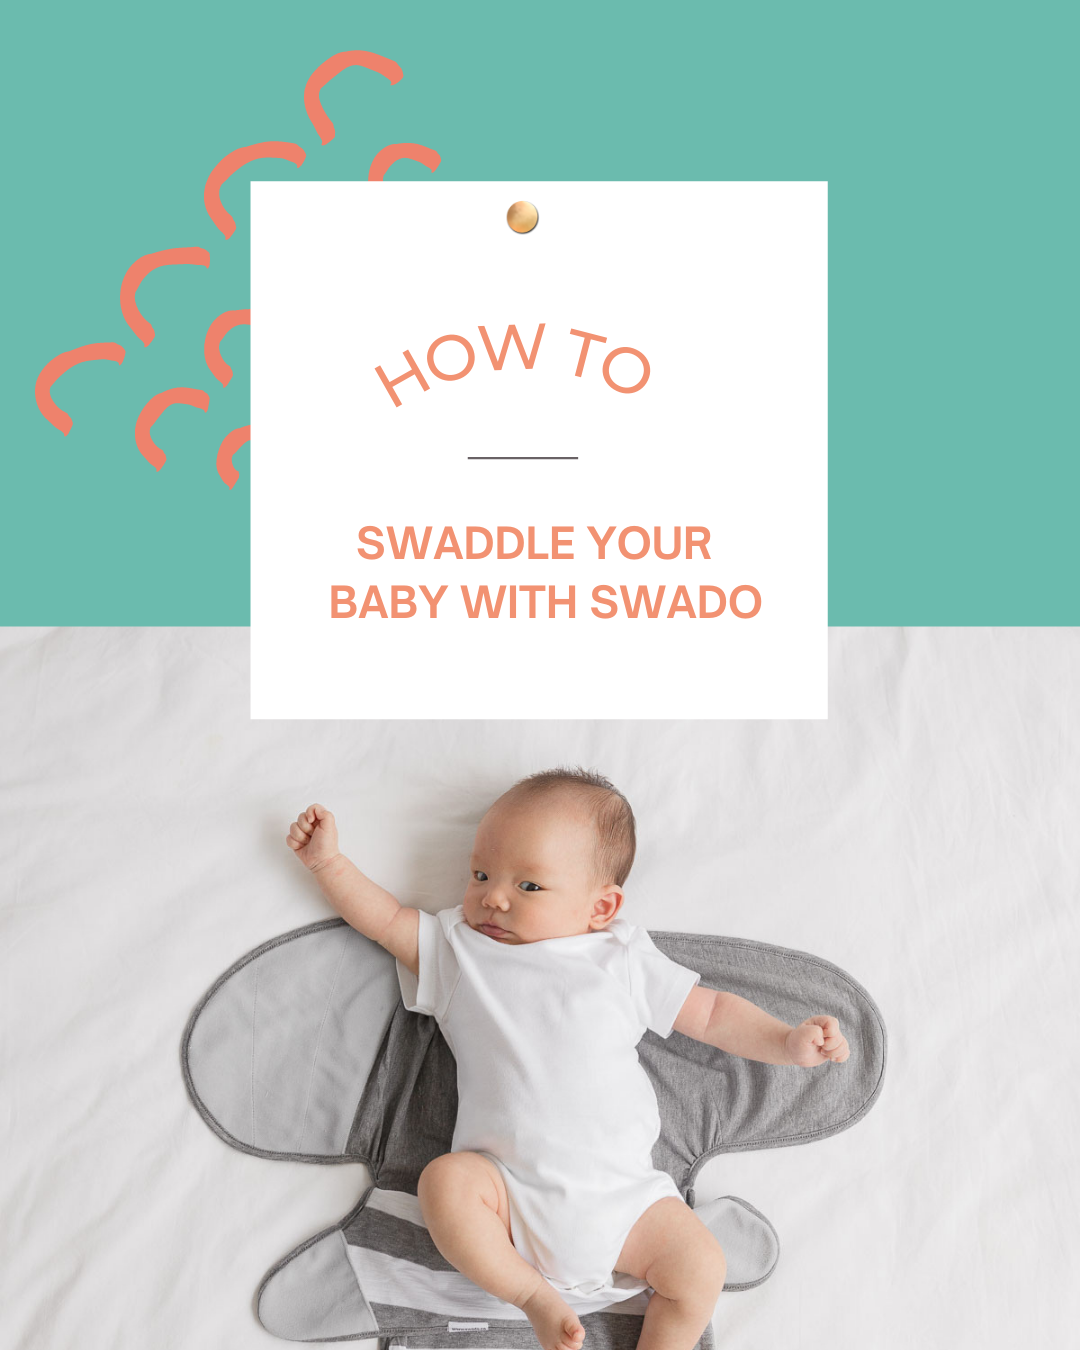 How to Swaddle A Baby In 4 Easy Steps